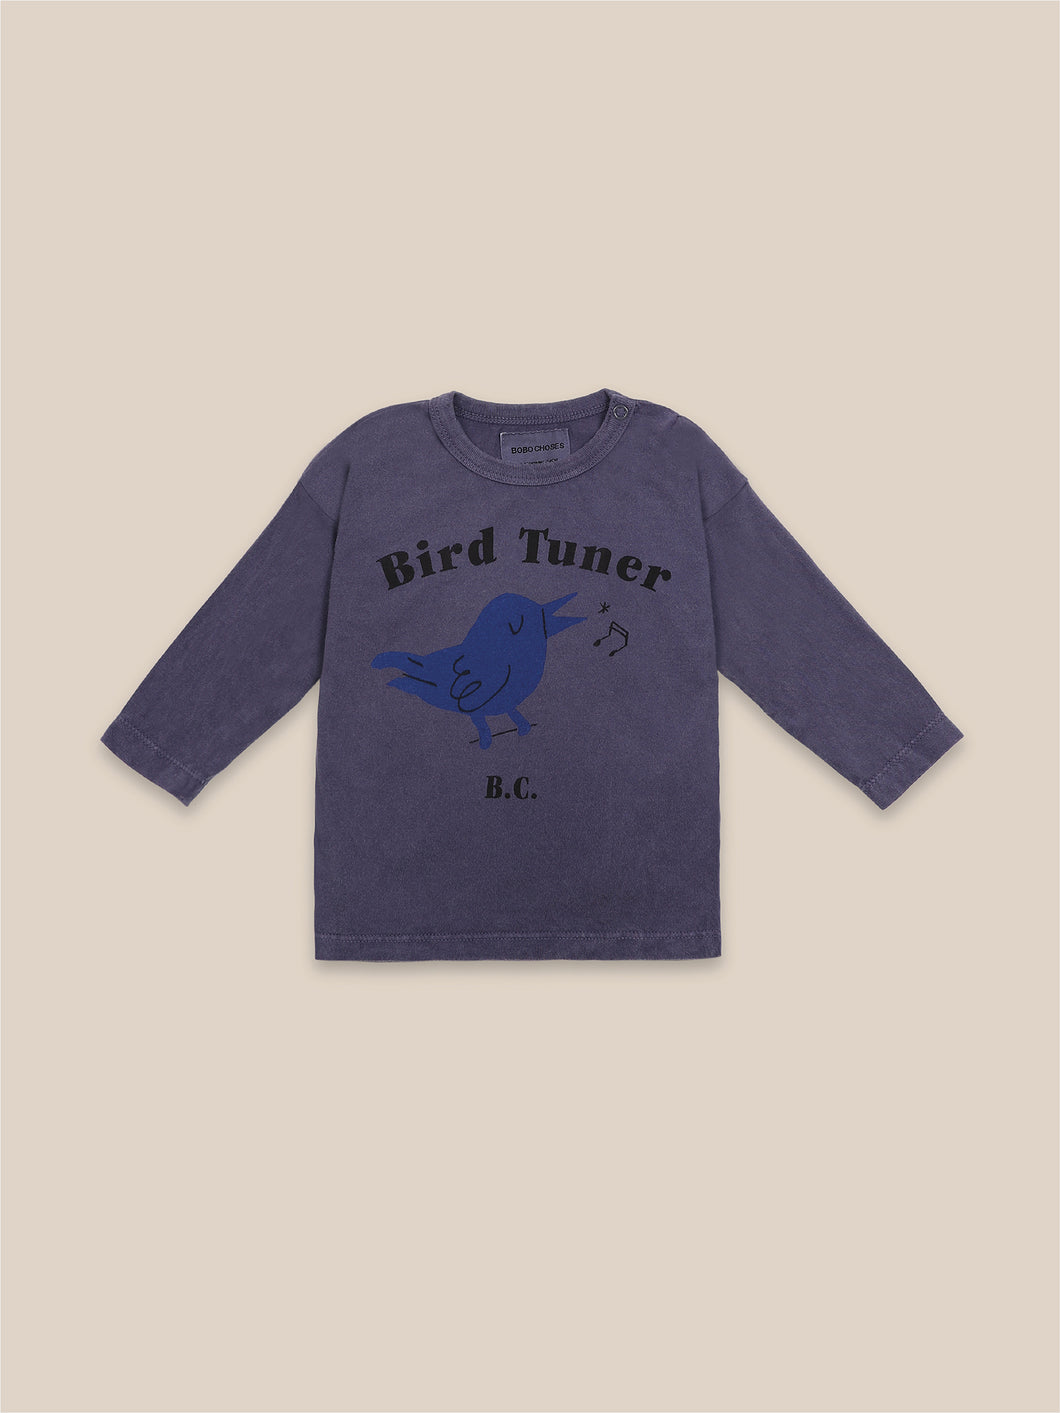 [50%OFF] Bird turner Tshirt